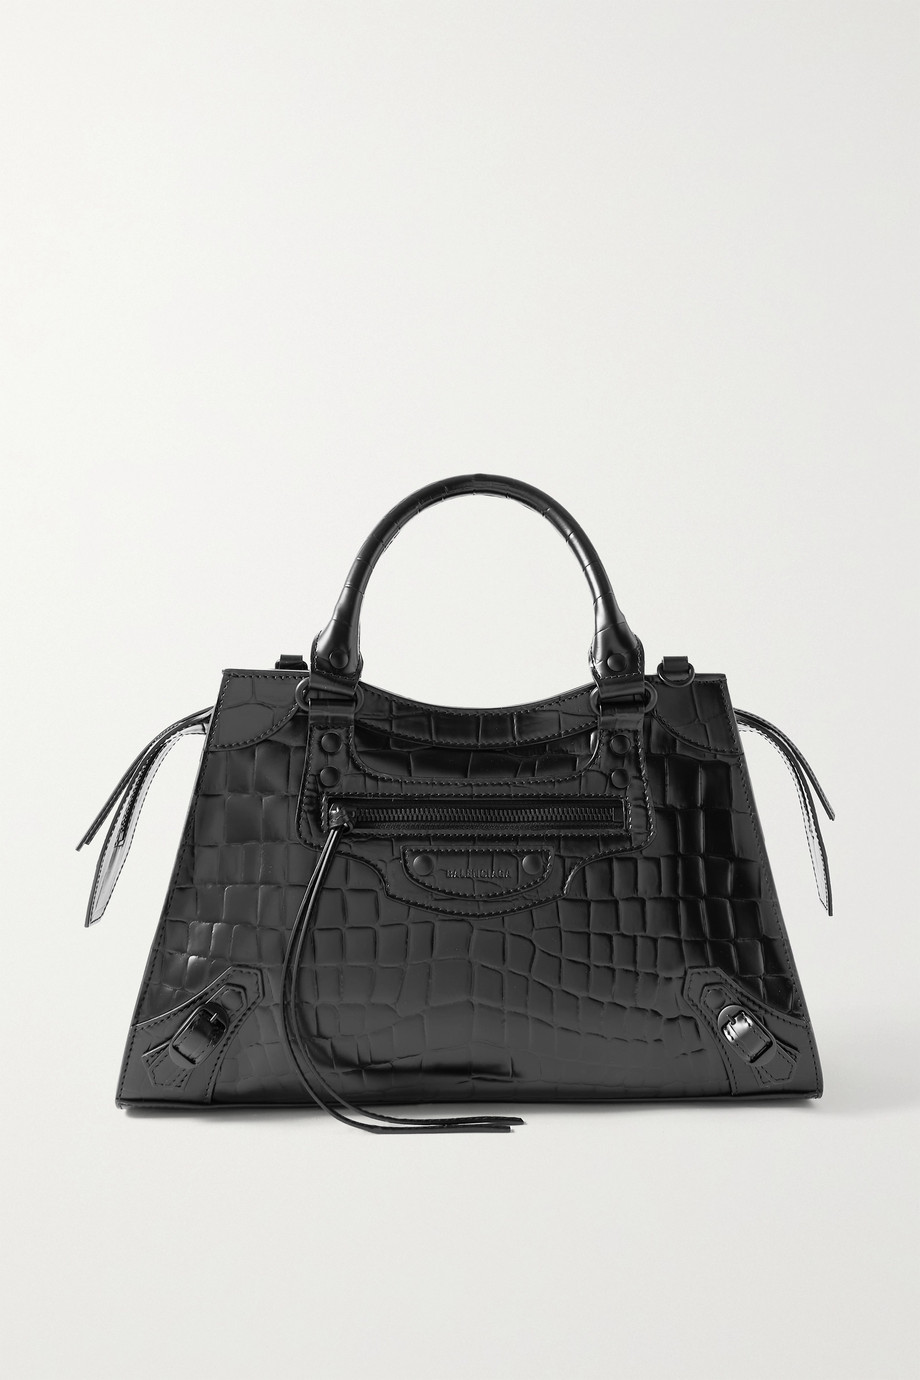 BALENCIAGA Neo Classic City small croc-effect leather tote